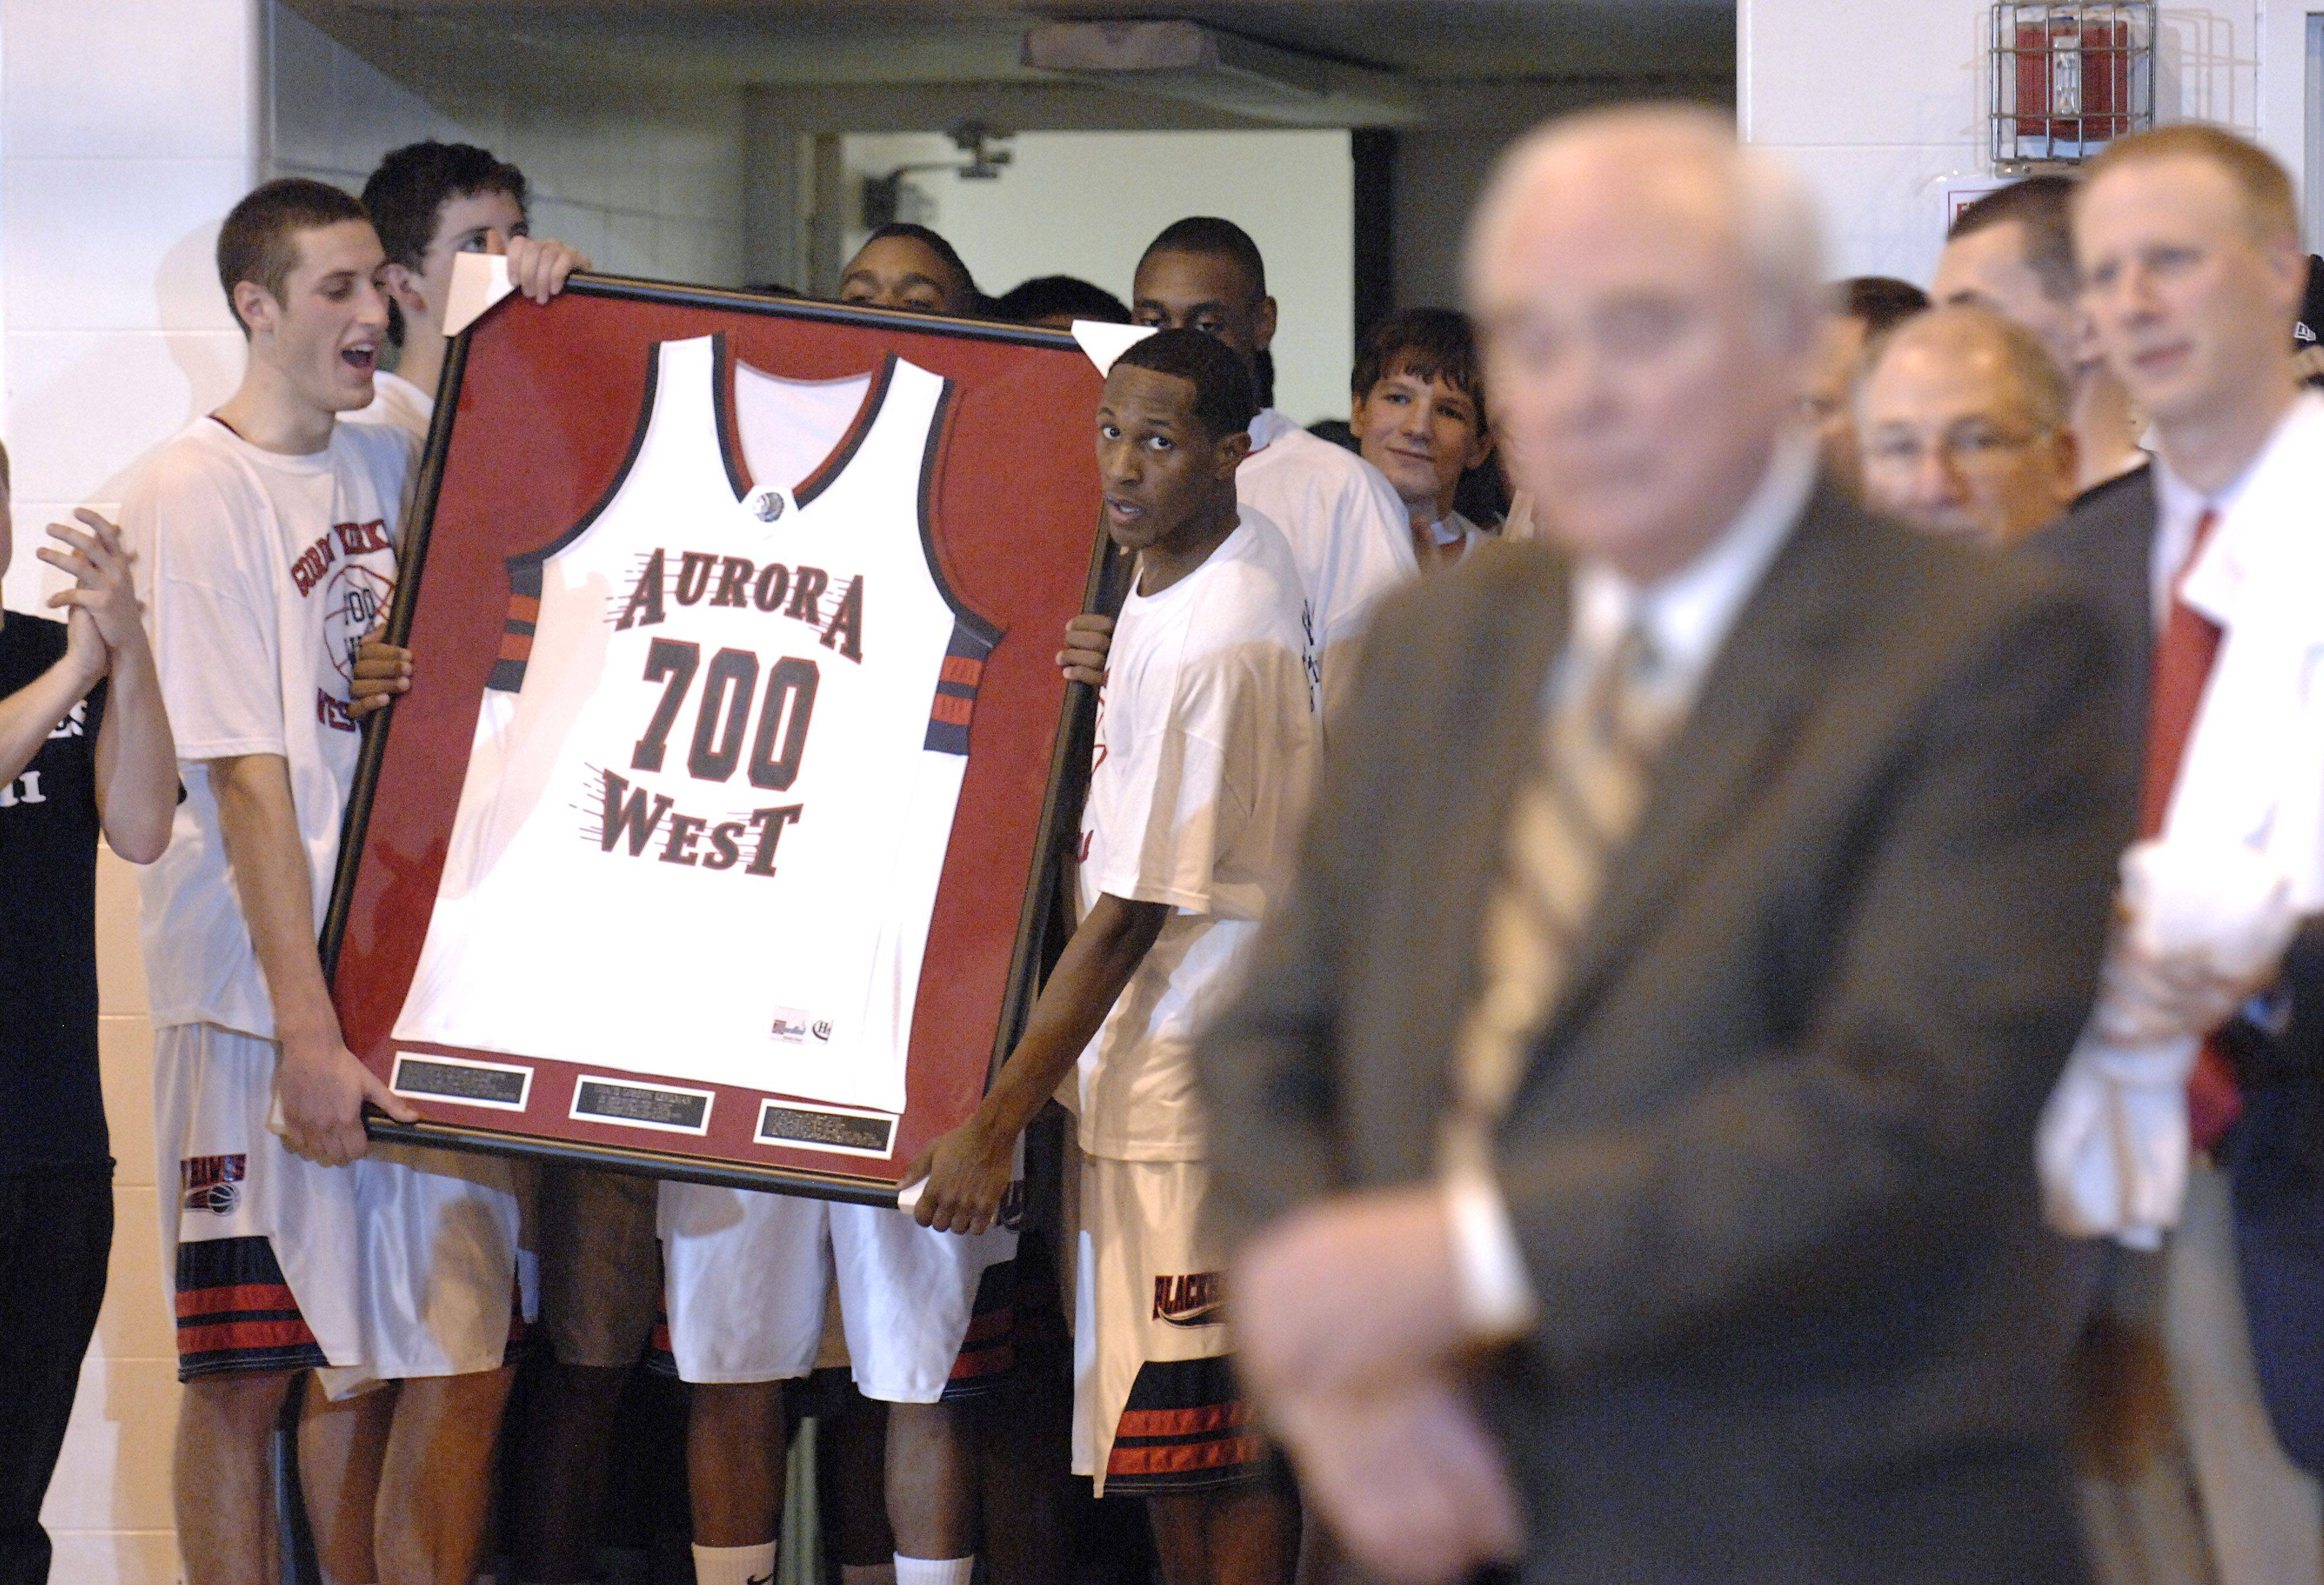 West Aurora coach Gordon Kerkman listens to a presentation after his 700th win at the school while the team waits in the background to present him with a special 700 jersey on Friday, December 10.